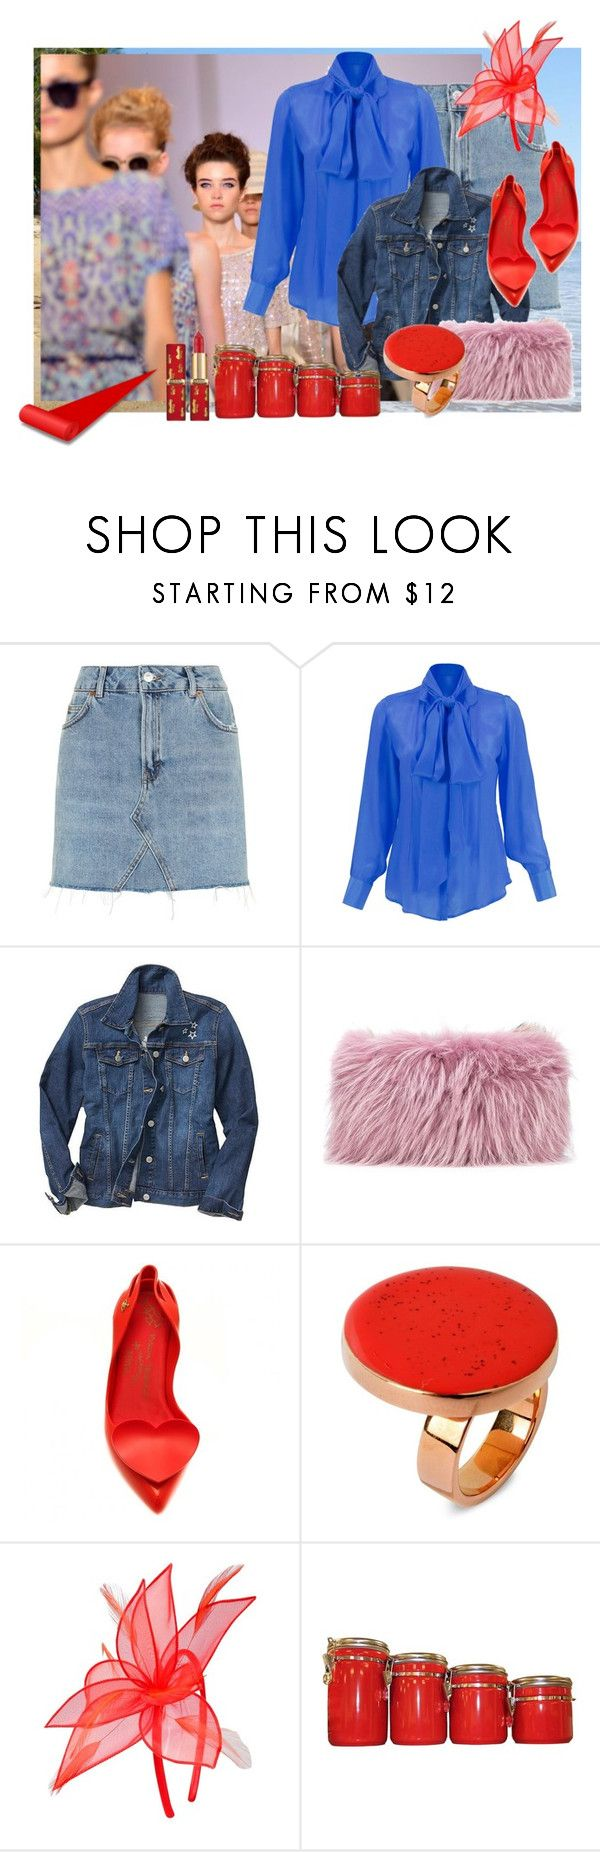 """""""red detail neutral clutch and blue outfit"""" by betsabe13 ❤ liked on Polyvore featuring Topshop, Gap, Mr & Mrs Italy, STELLA McCARTNEY, M&Co and Anchor Hocking"""